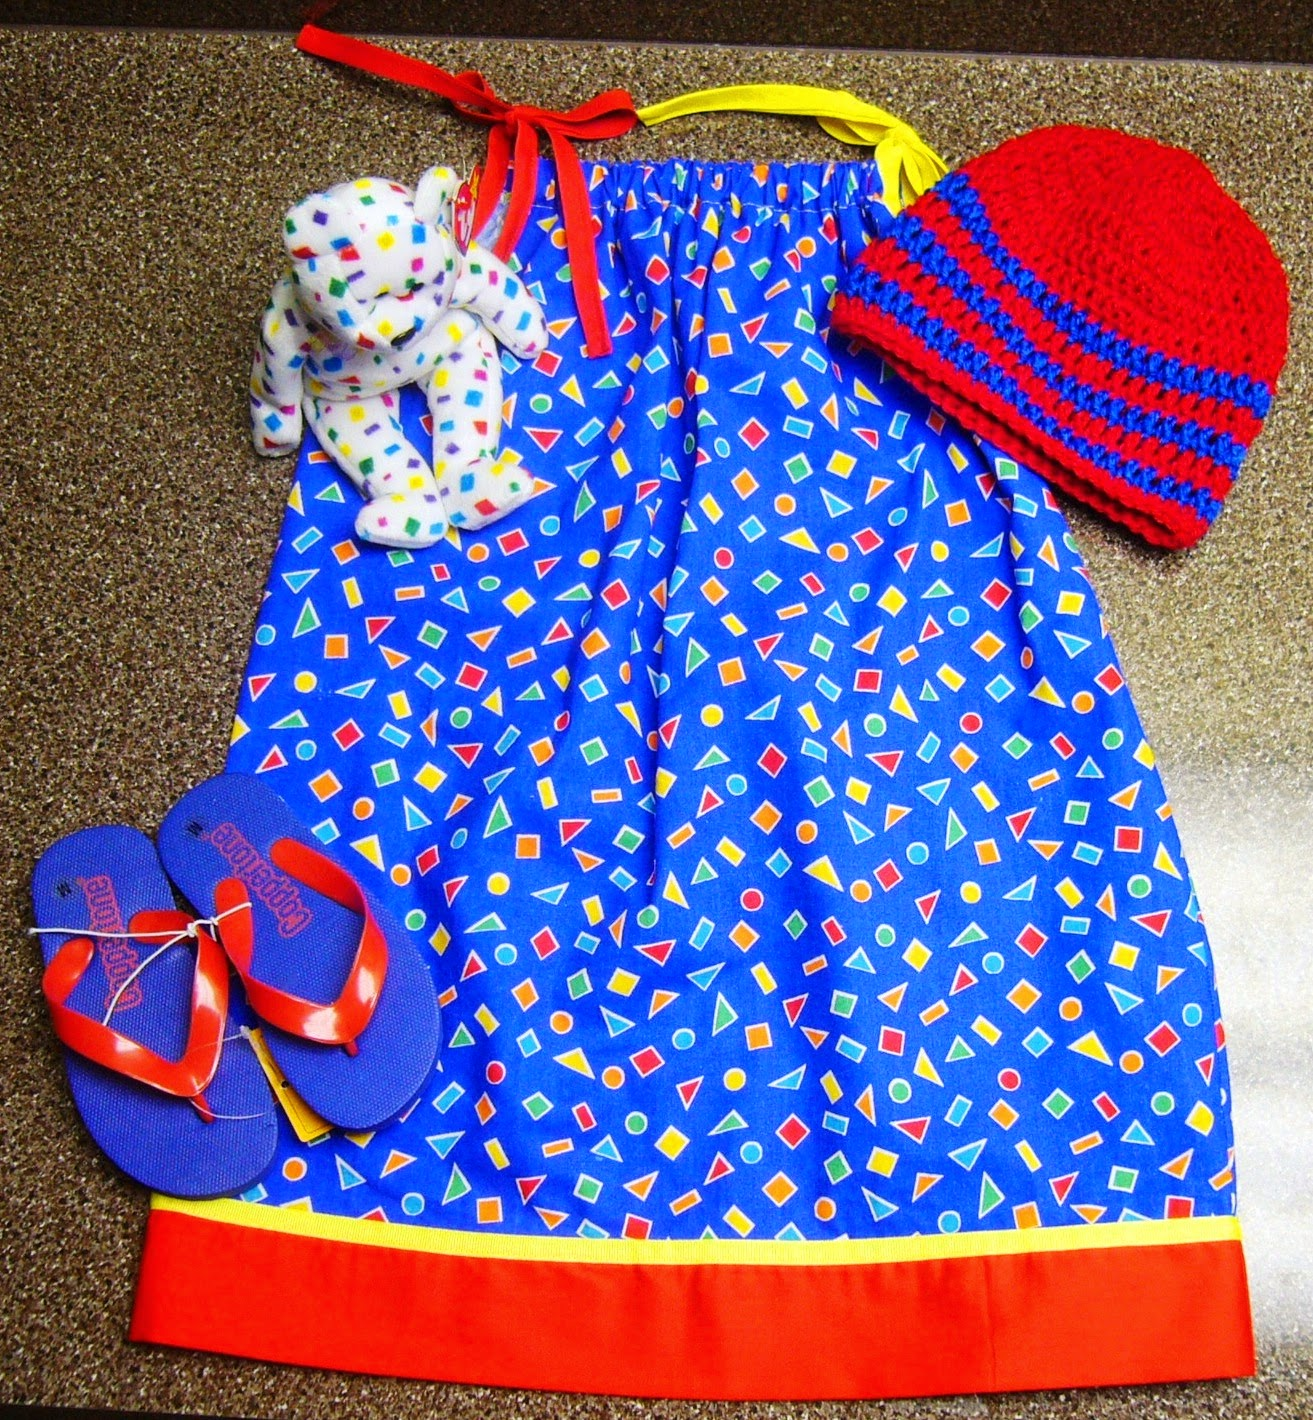 Pillowcase dress for Operation Christmas Child shoebox.